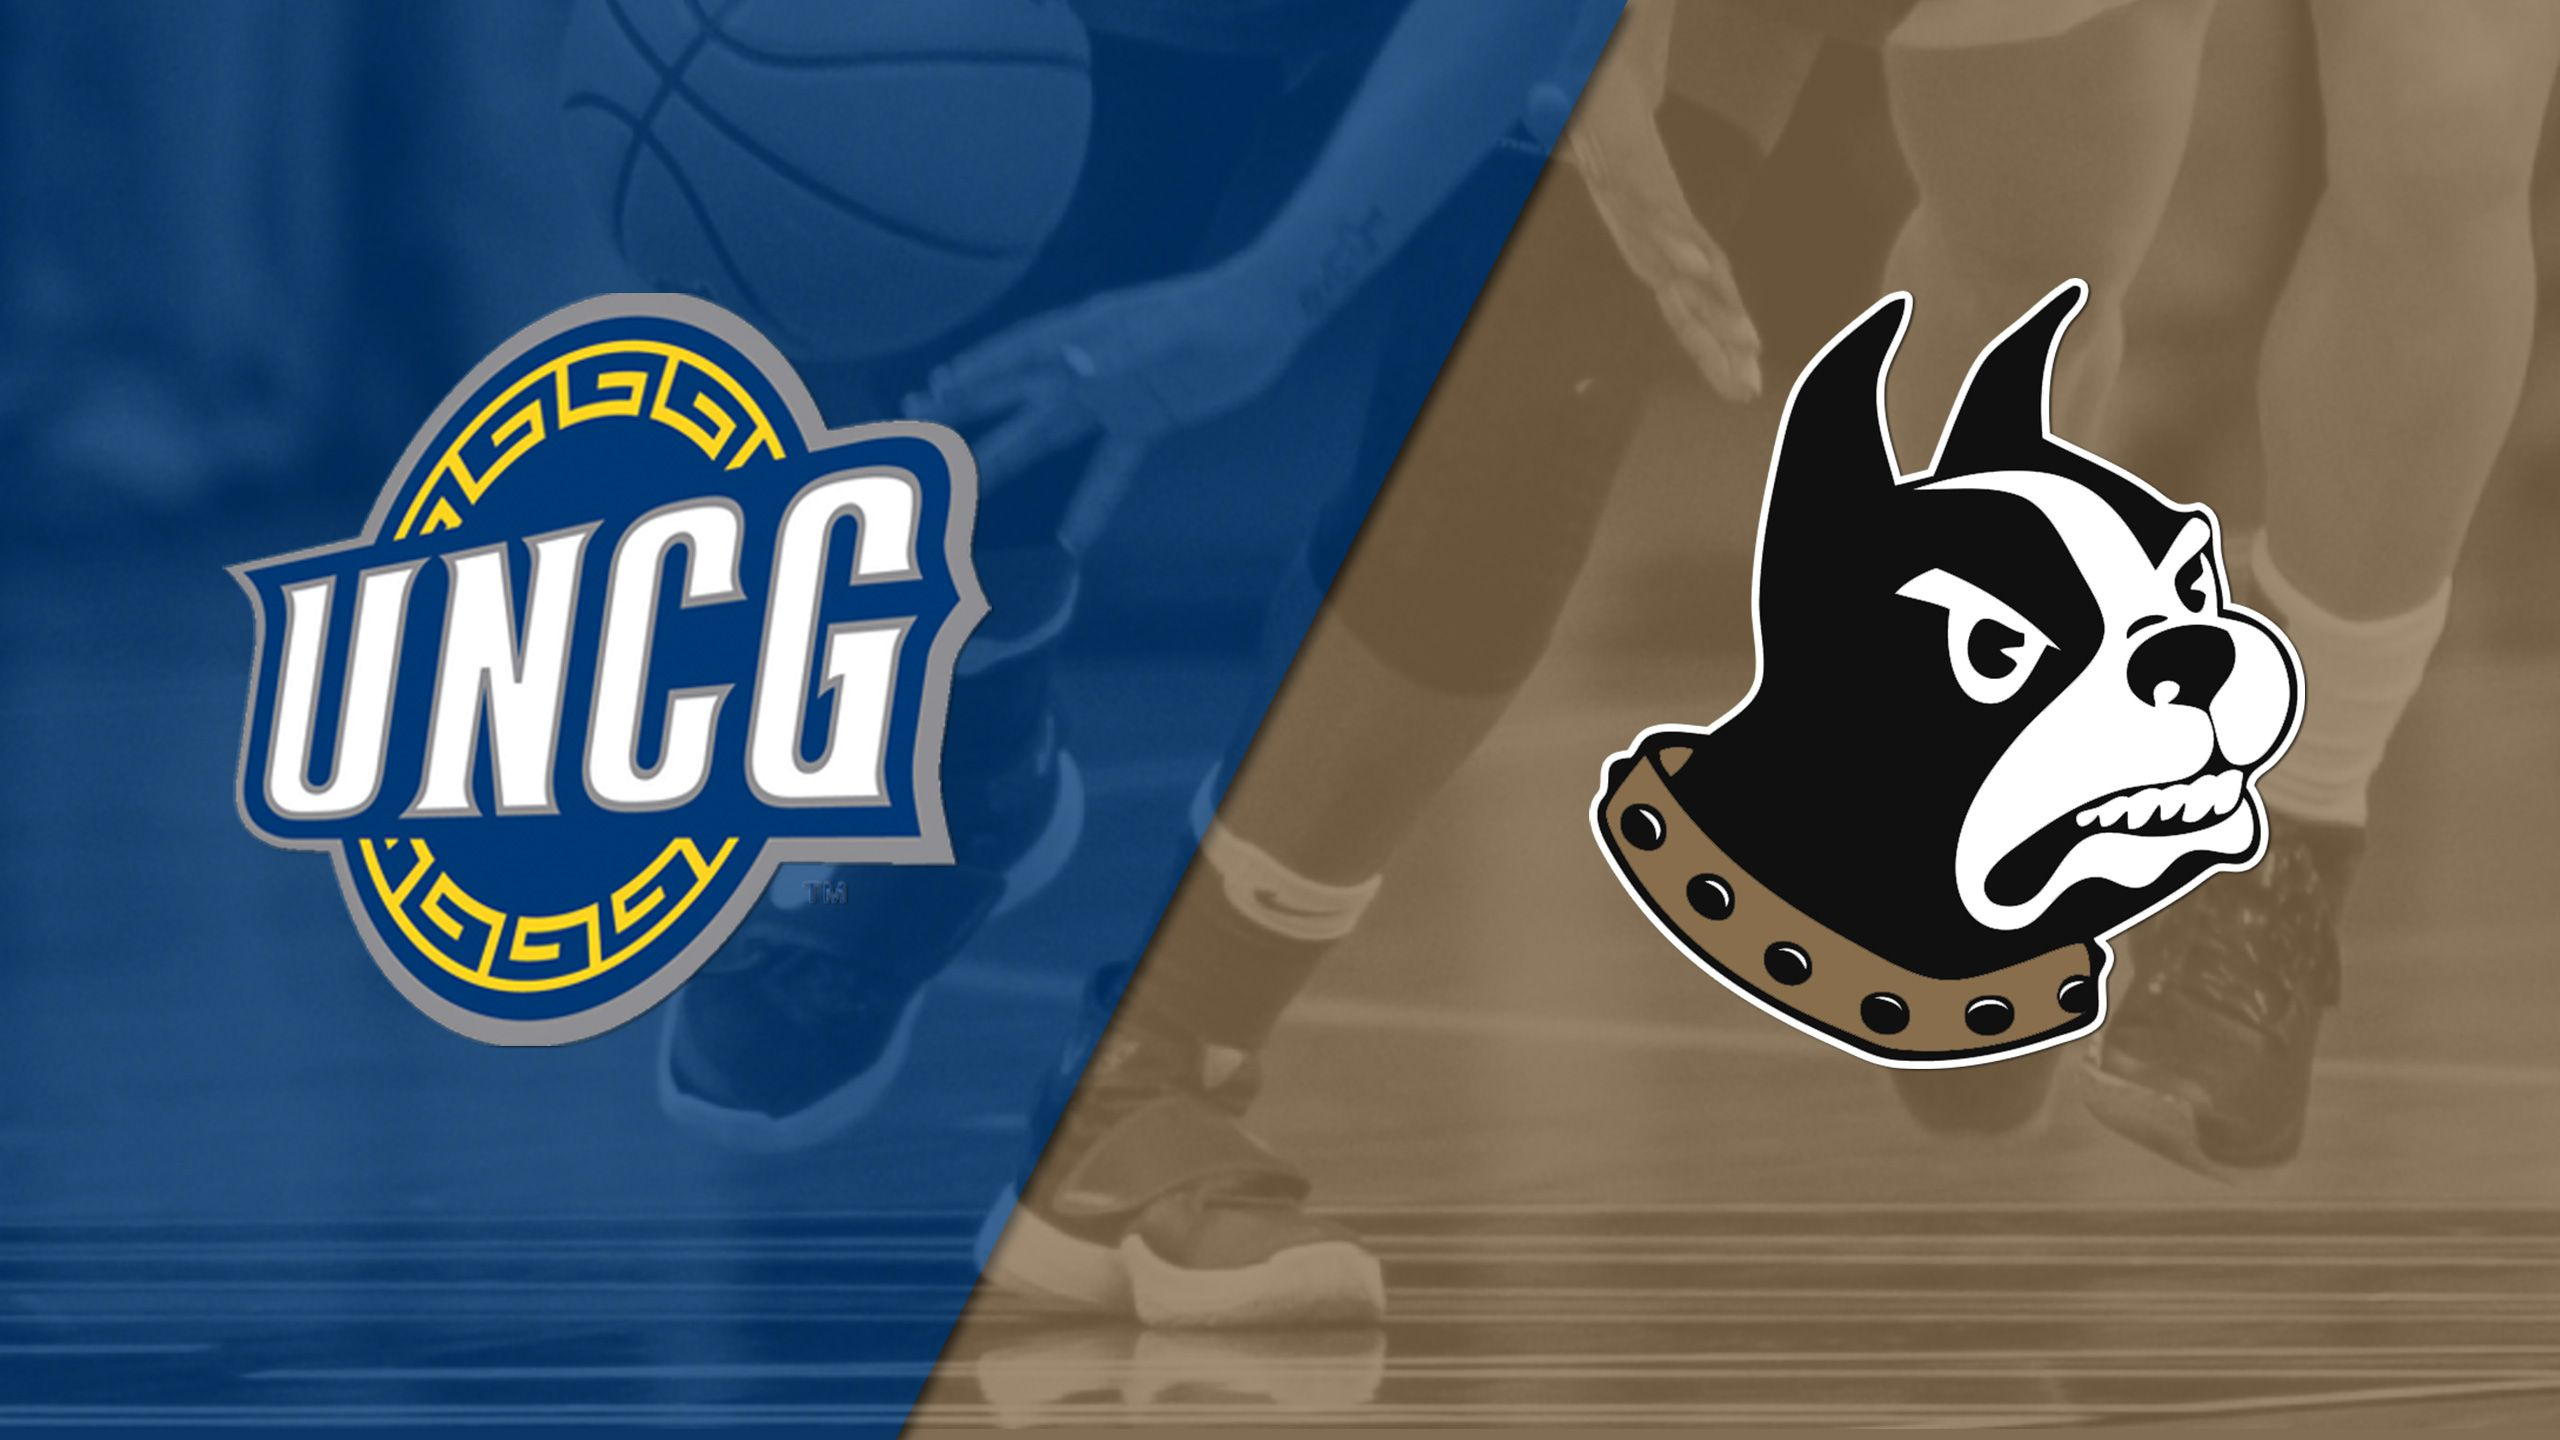 UNC Greensboro vs. Wofford (W Basketball)